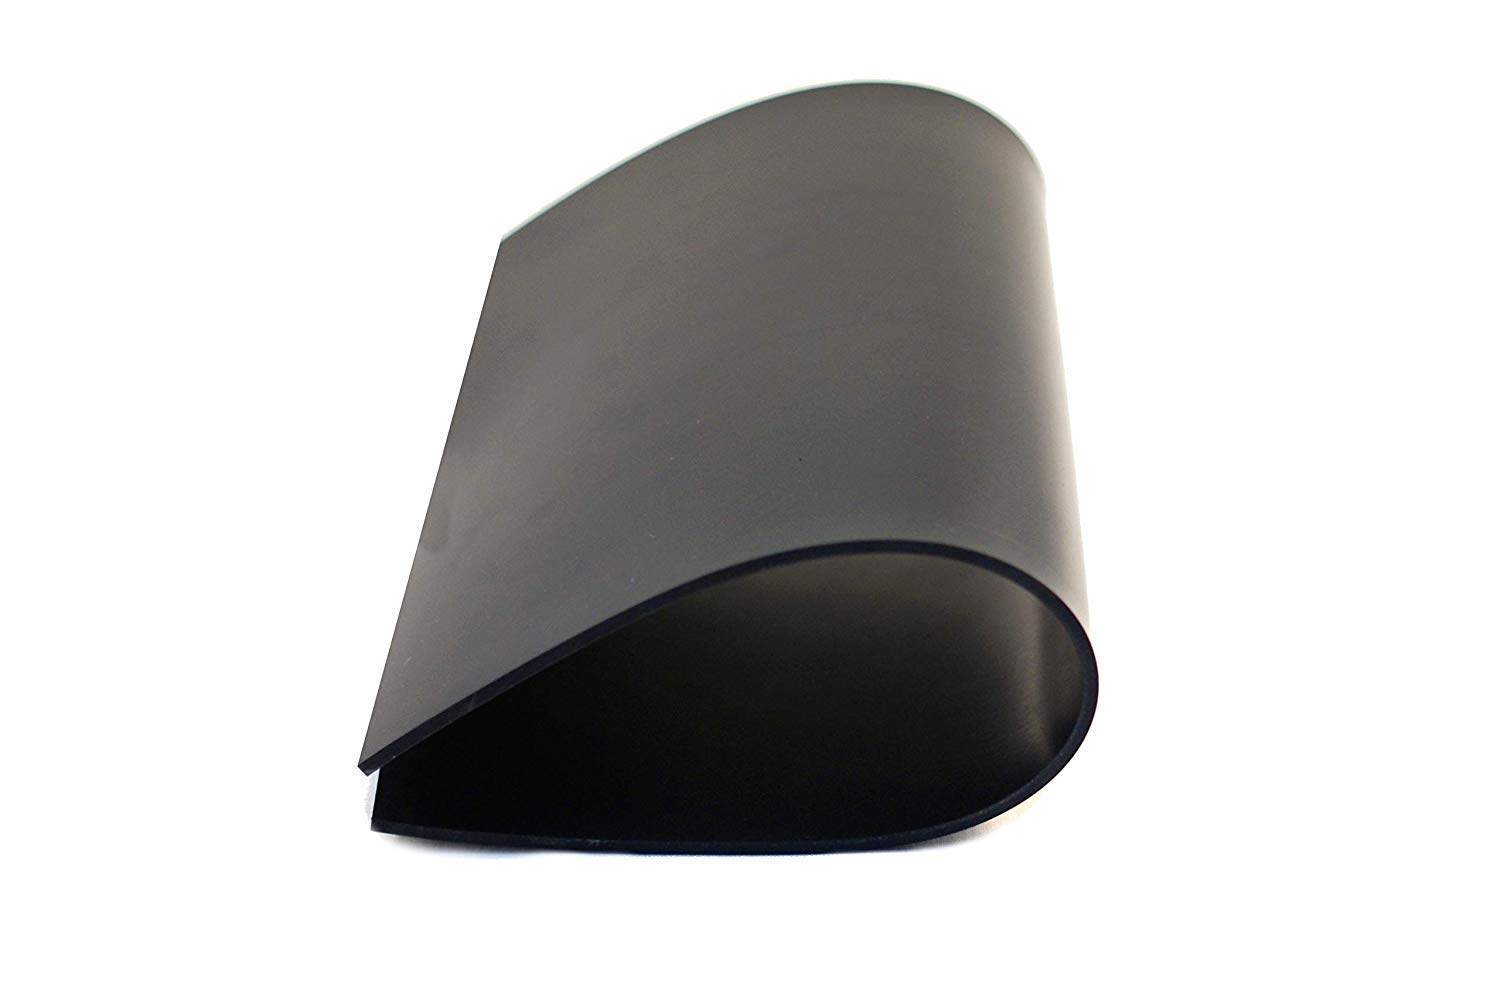 Black Neoprene Rubber Sheet 3mm Thick Size A4 297mm x 210mm